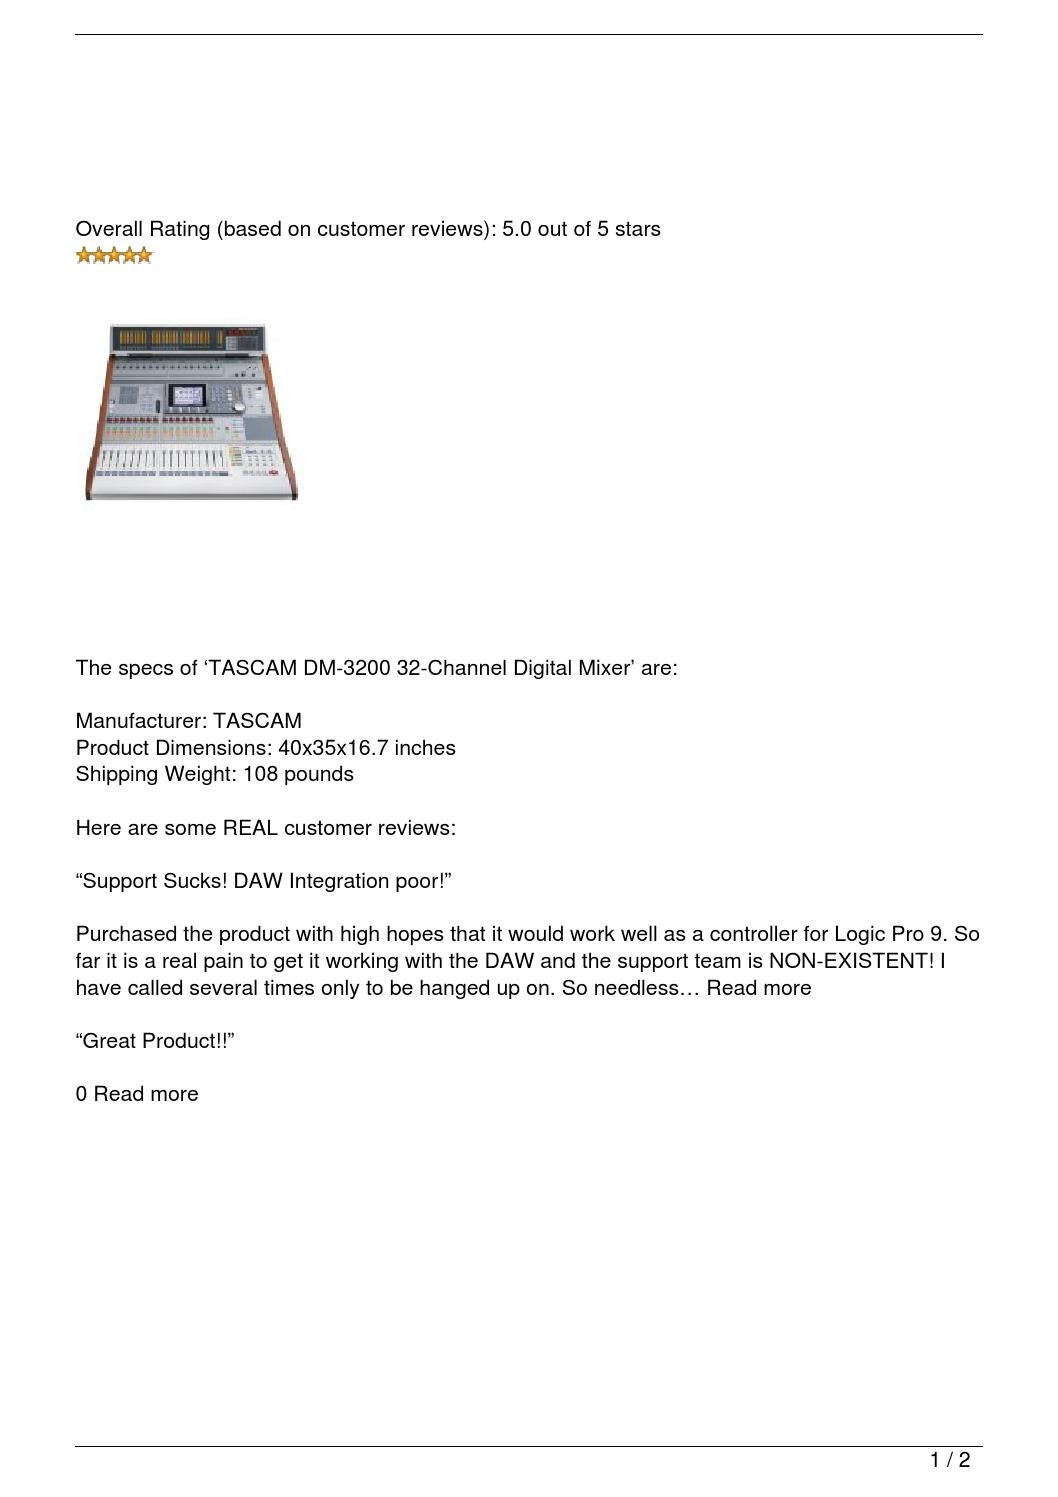 tascam dm 3200 32 channel digital mixer review by soundngear issuu. Black Bedroom Furniture Sets. Home Design Ideas